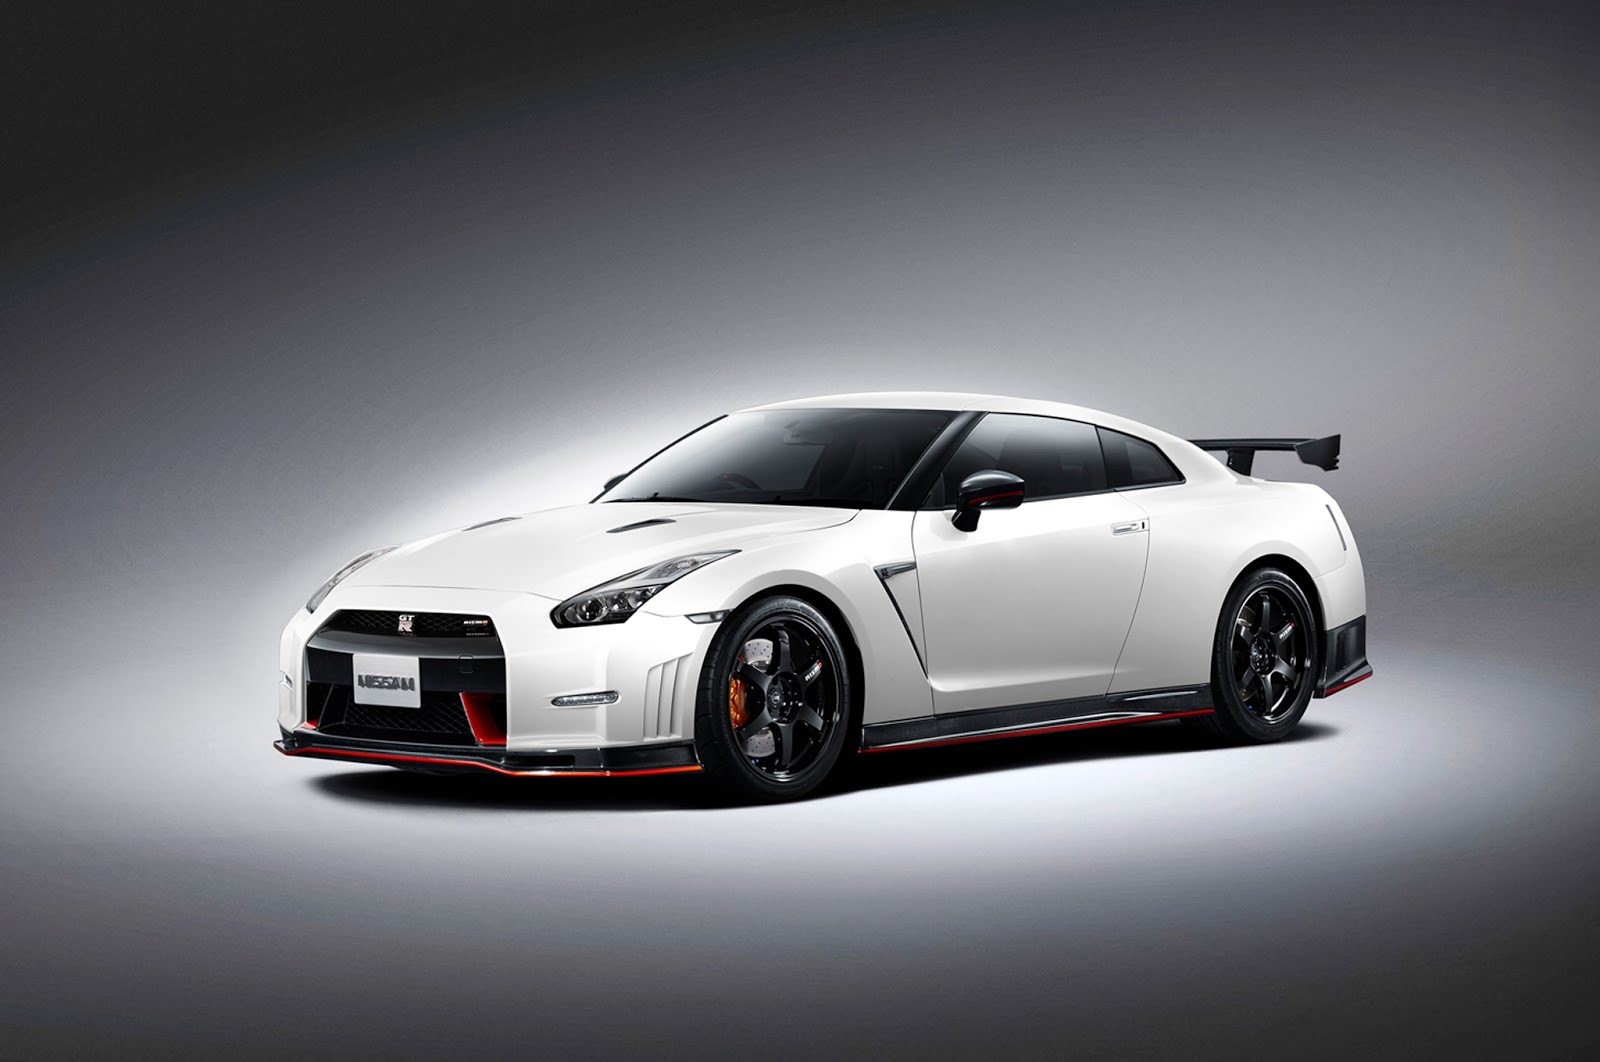 2015 nissan gt r nismo review specs and pictures auto review 2014. Black Bedroom Furniture Sets. Home Design Ideas